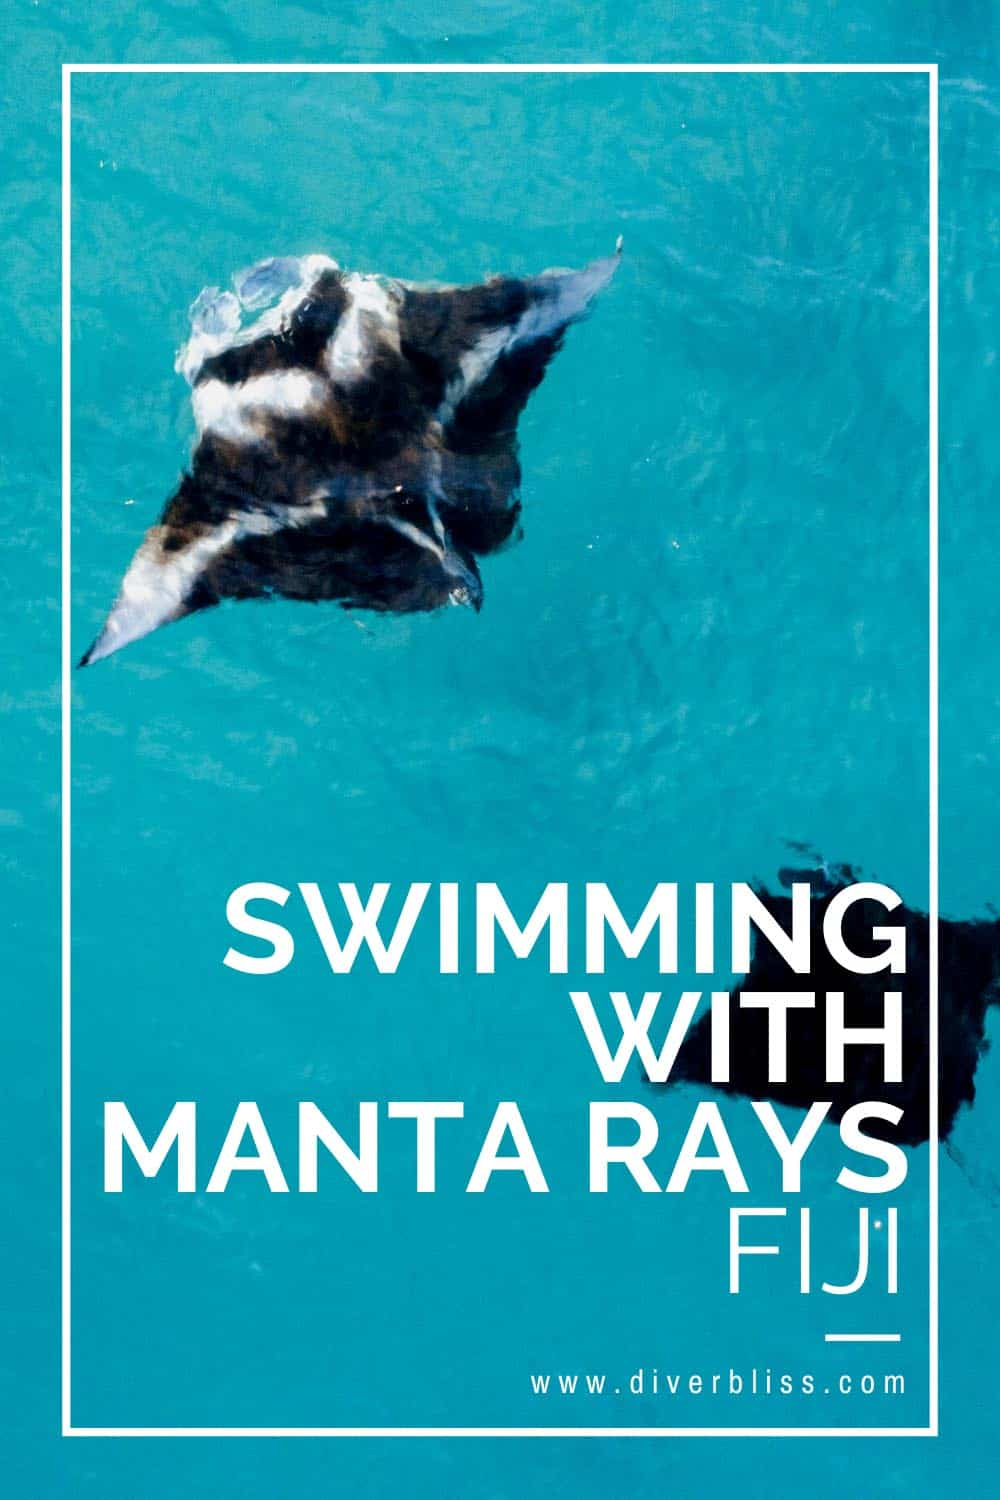 Guide to Swimming with Manta Rays in Fiji